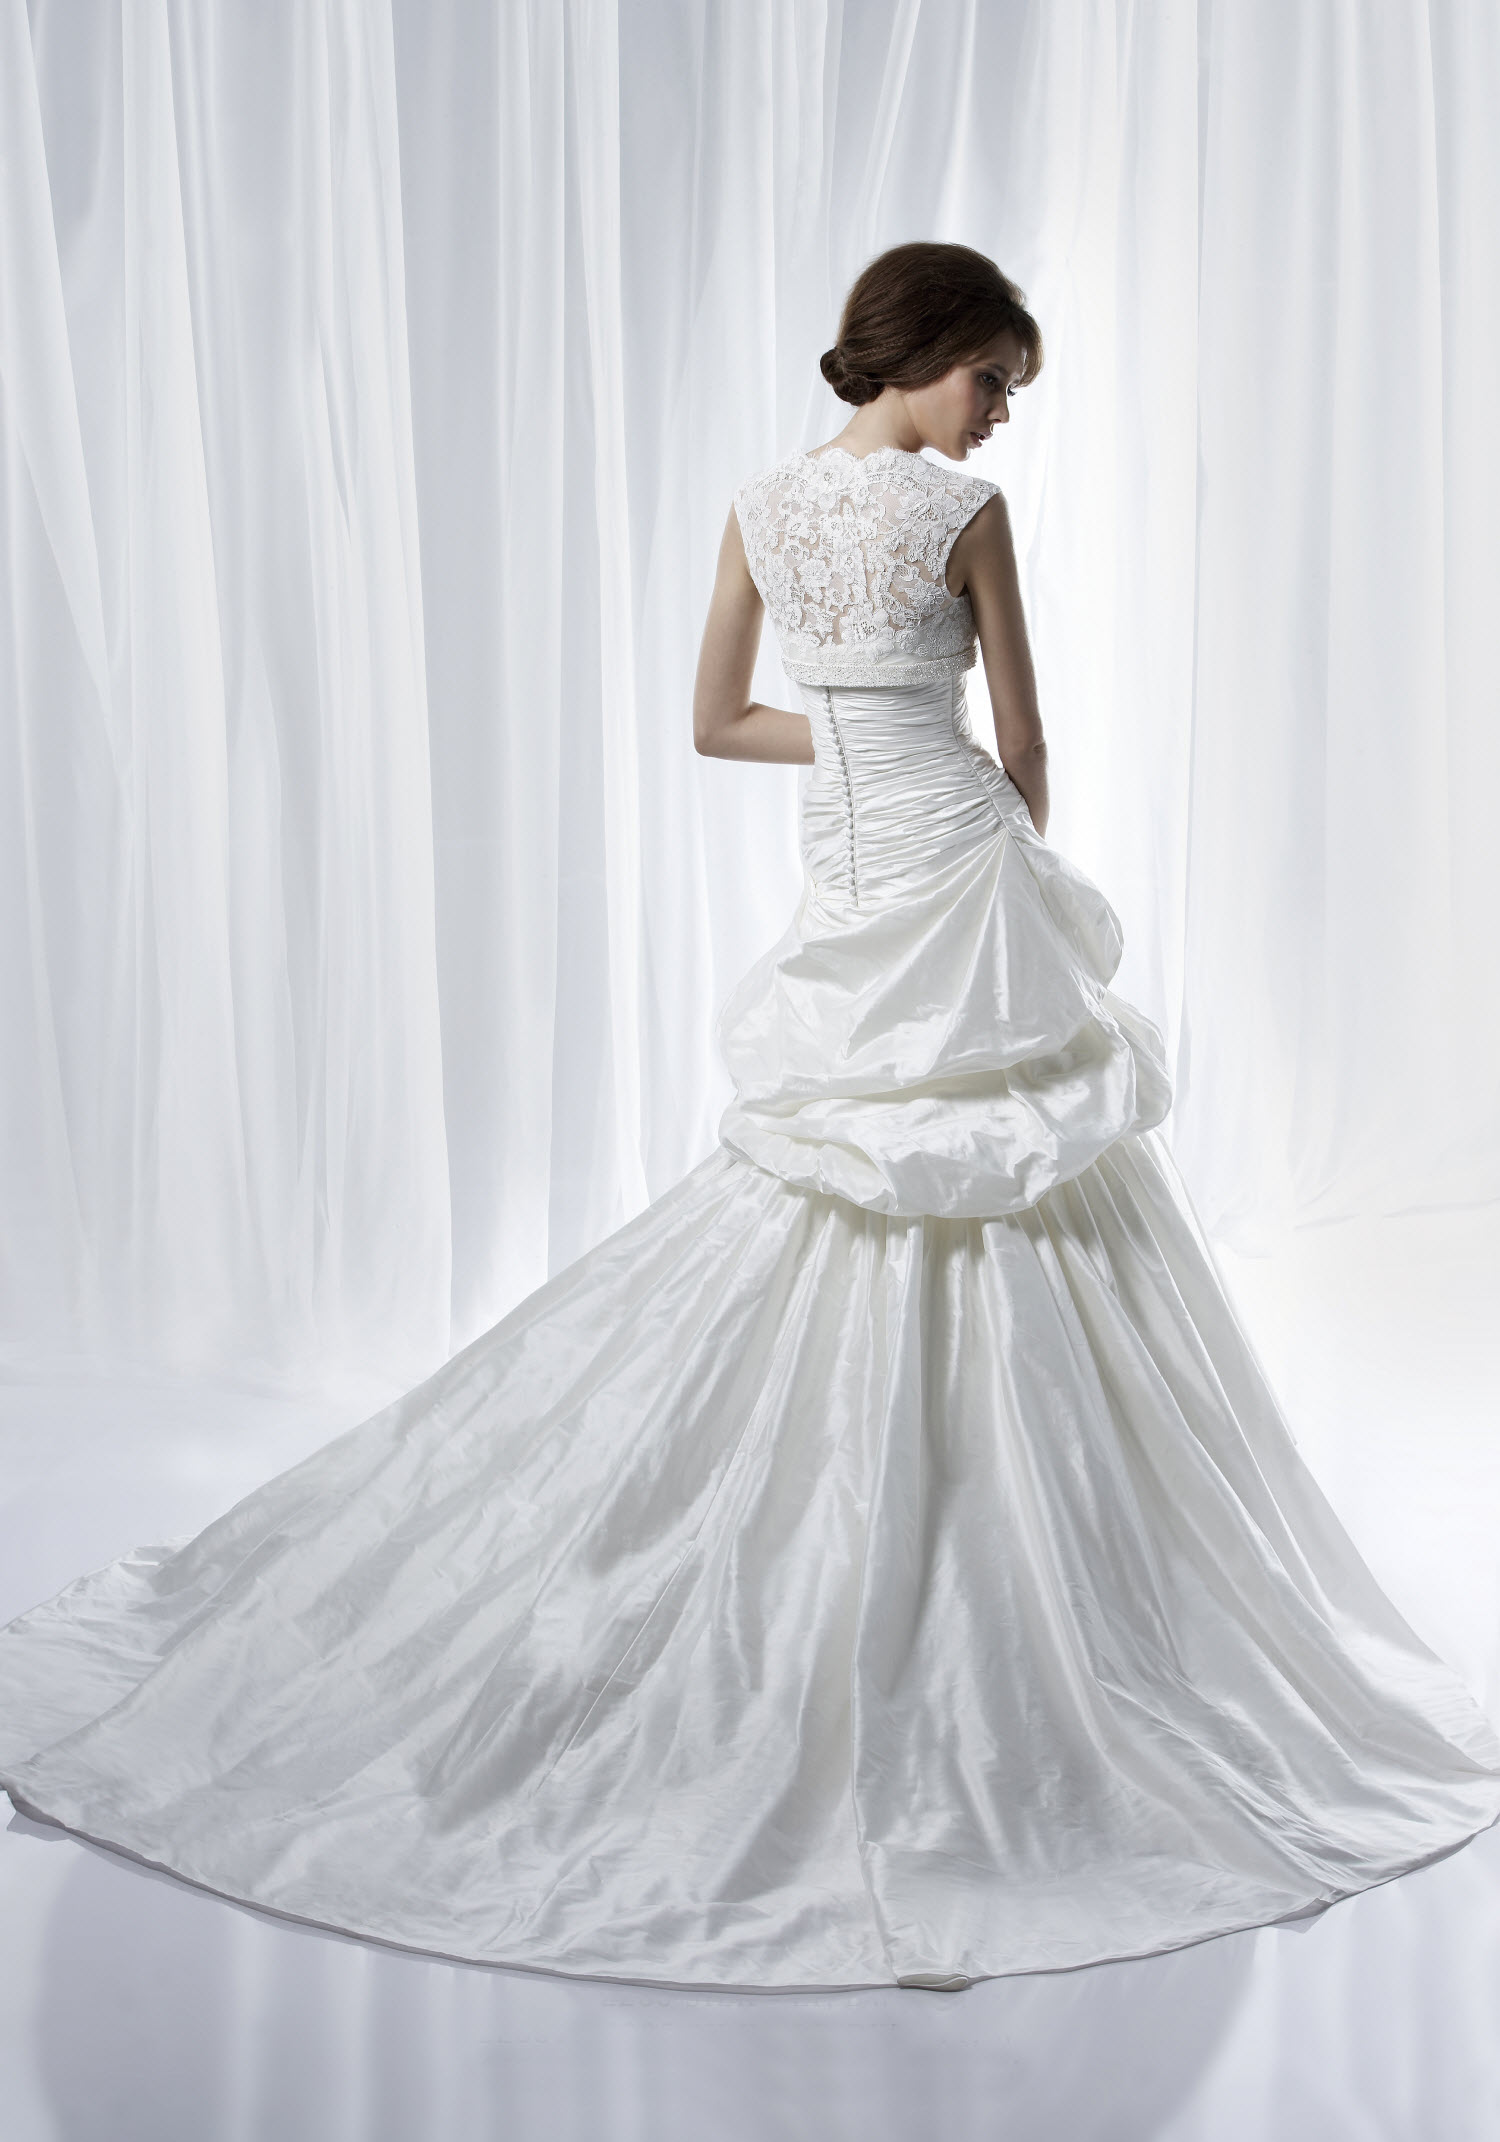 Dramatic And Timeless Wedding Dress By Anjolique With